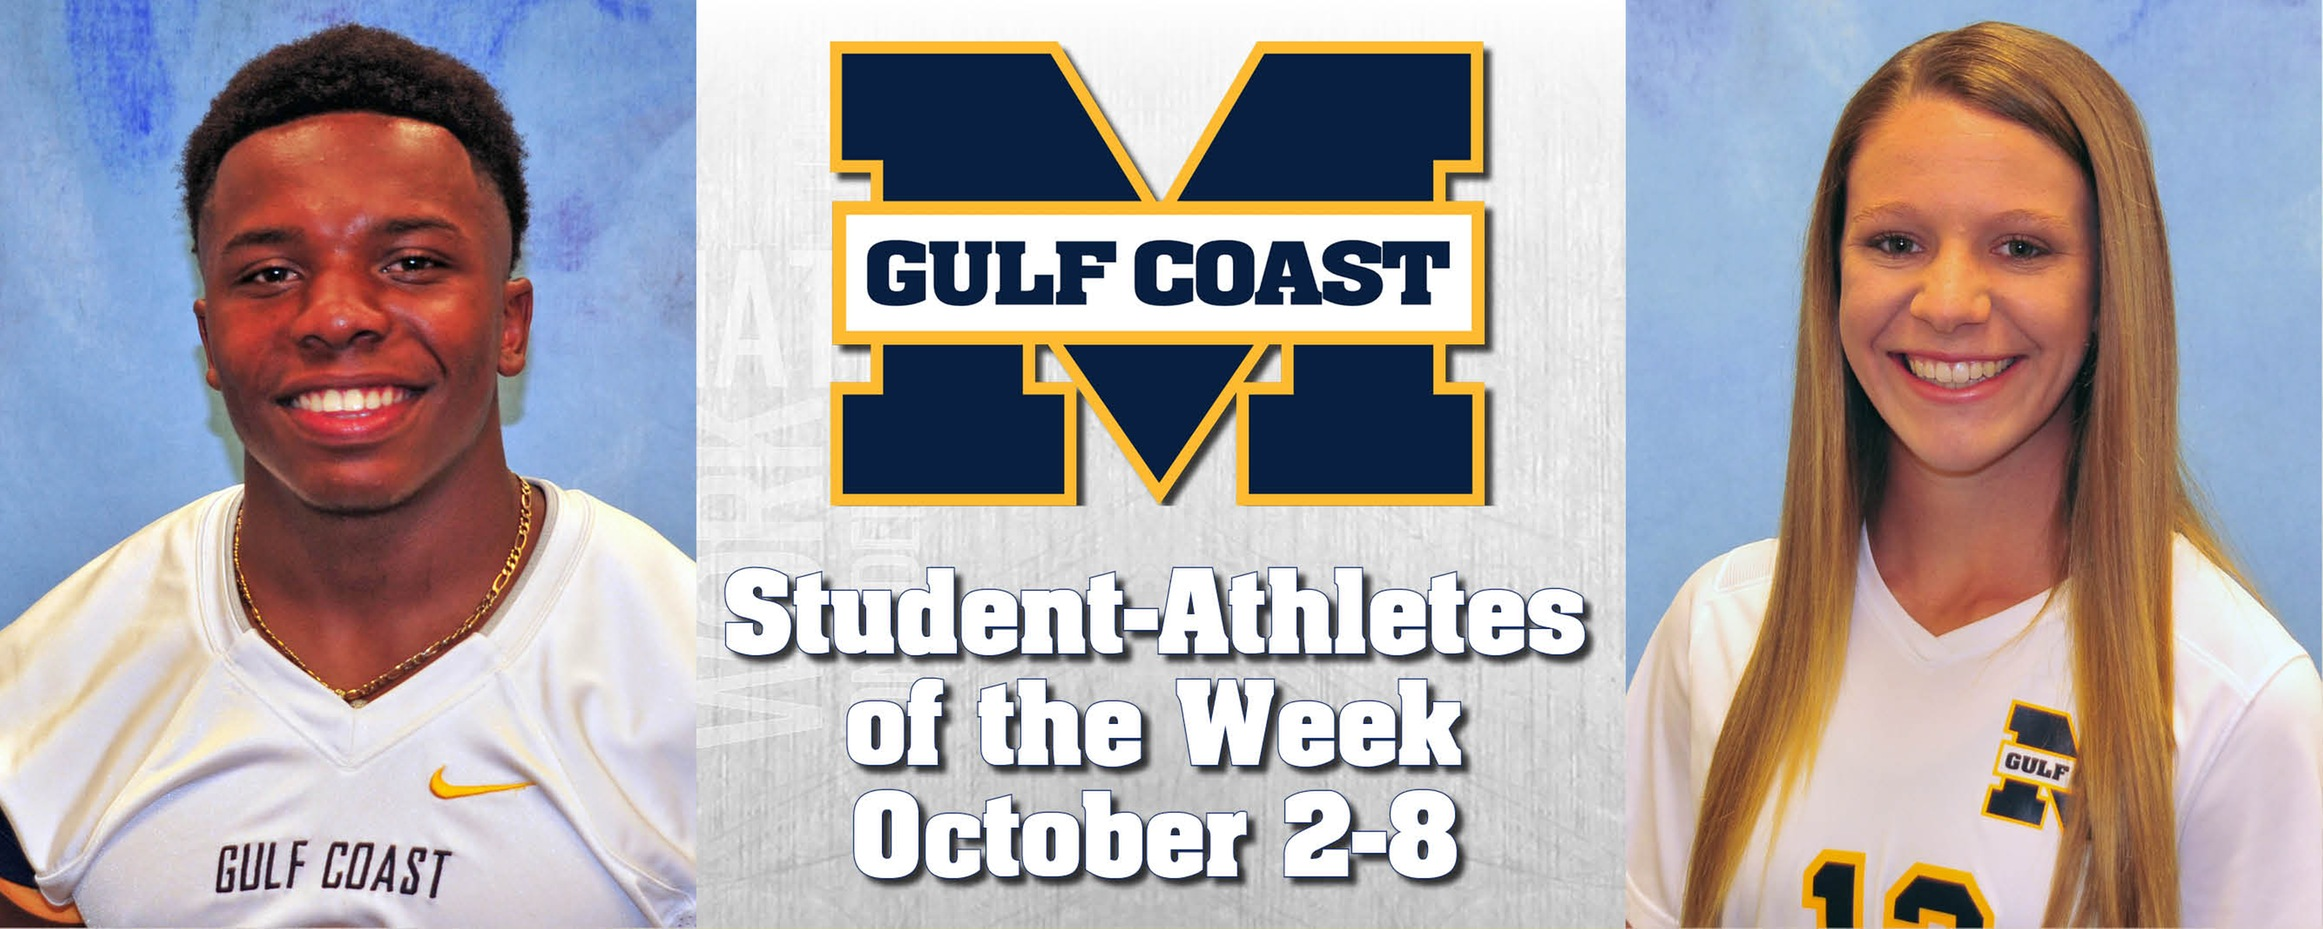 Torrey, LaFontaine named MGCCC Student-Athletes of the Week